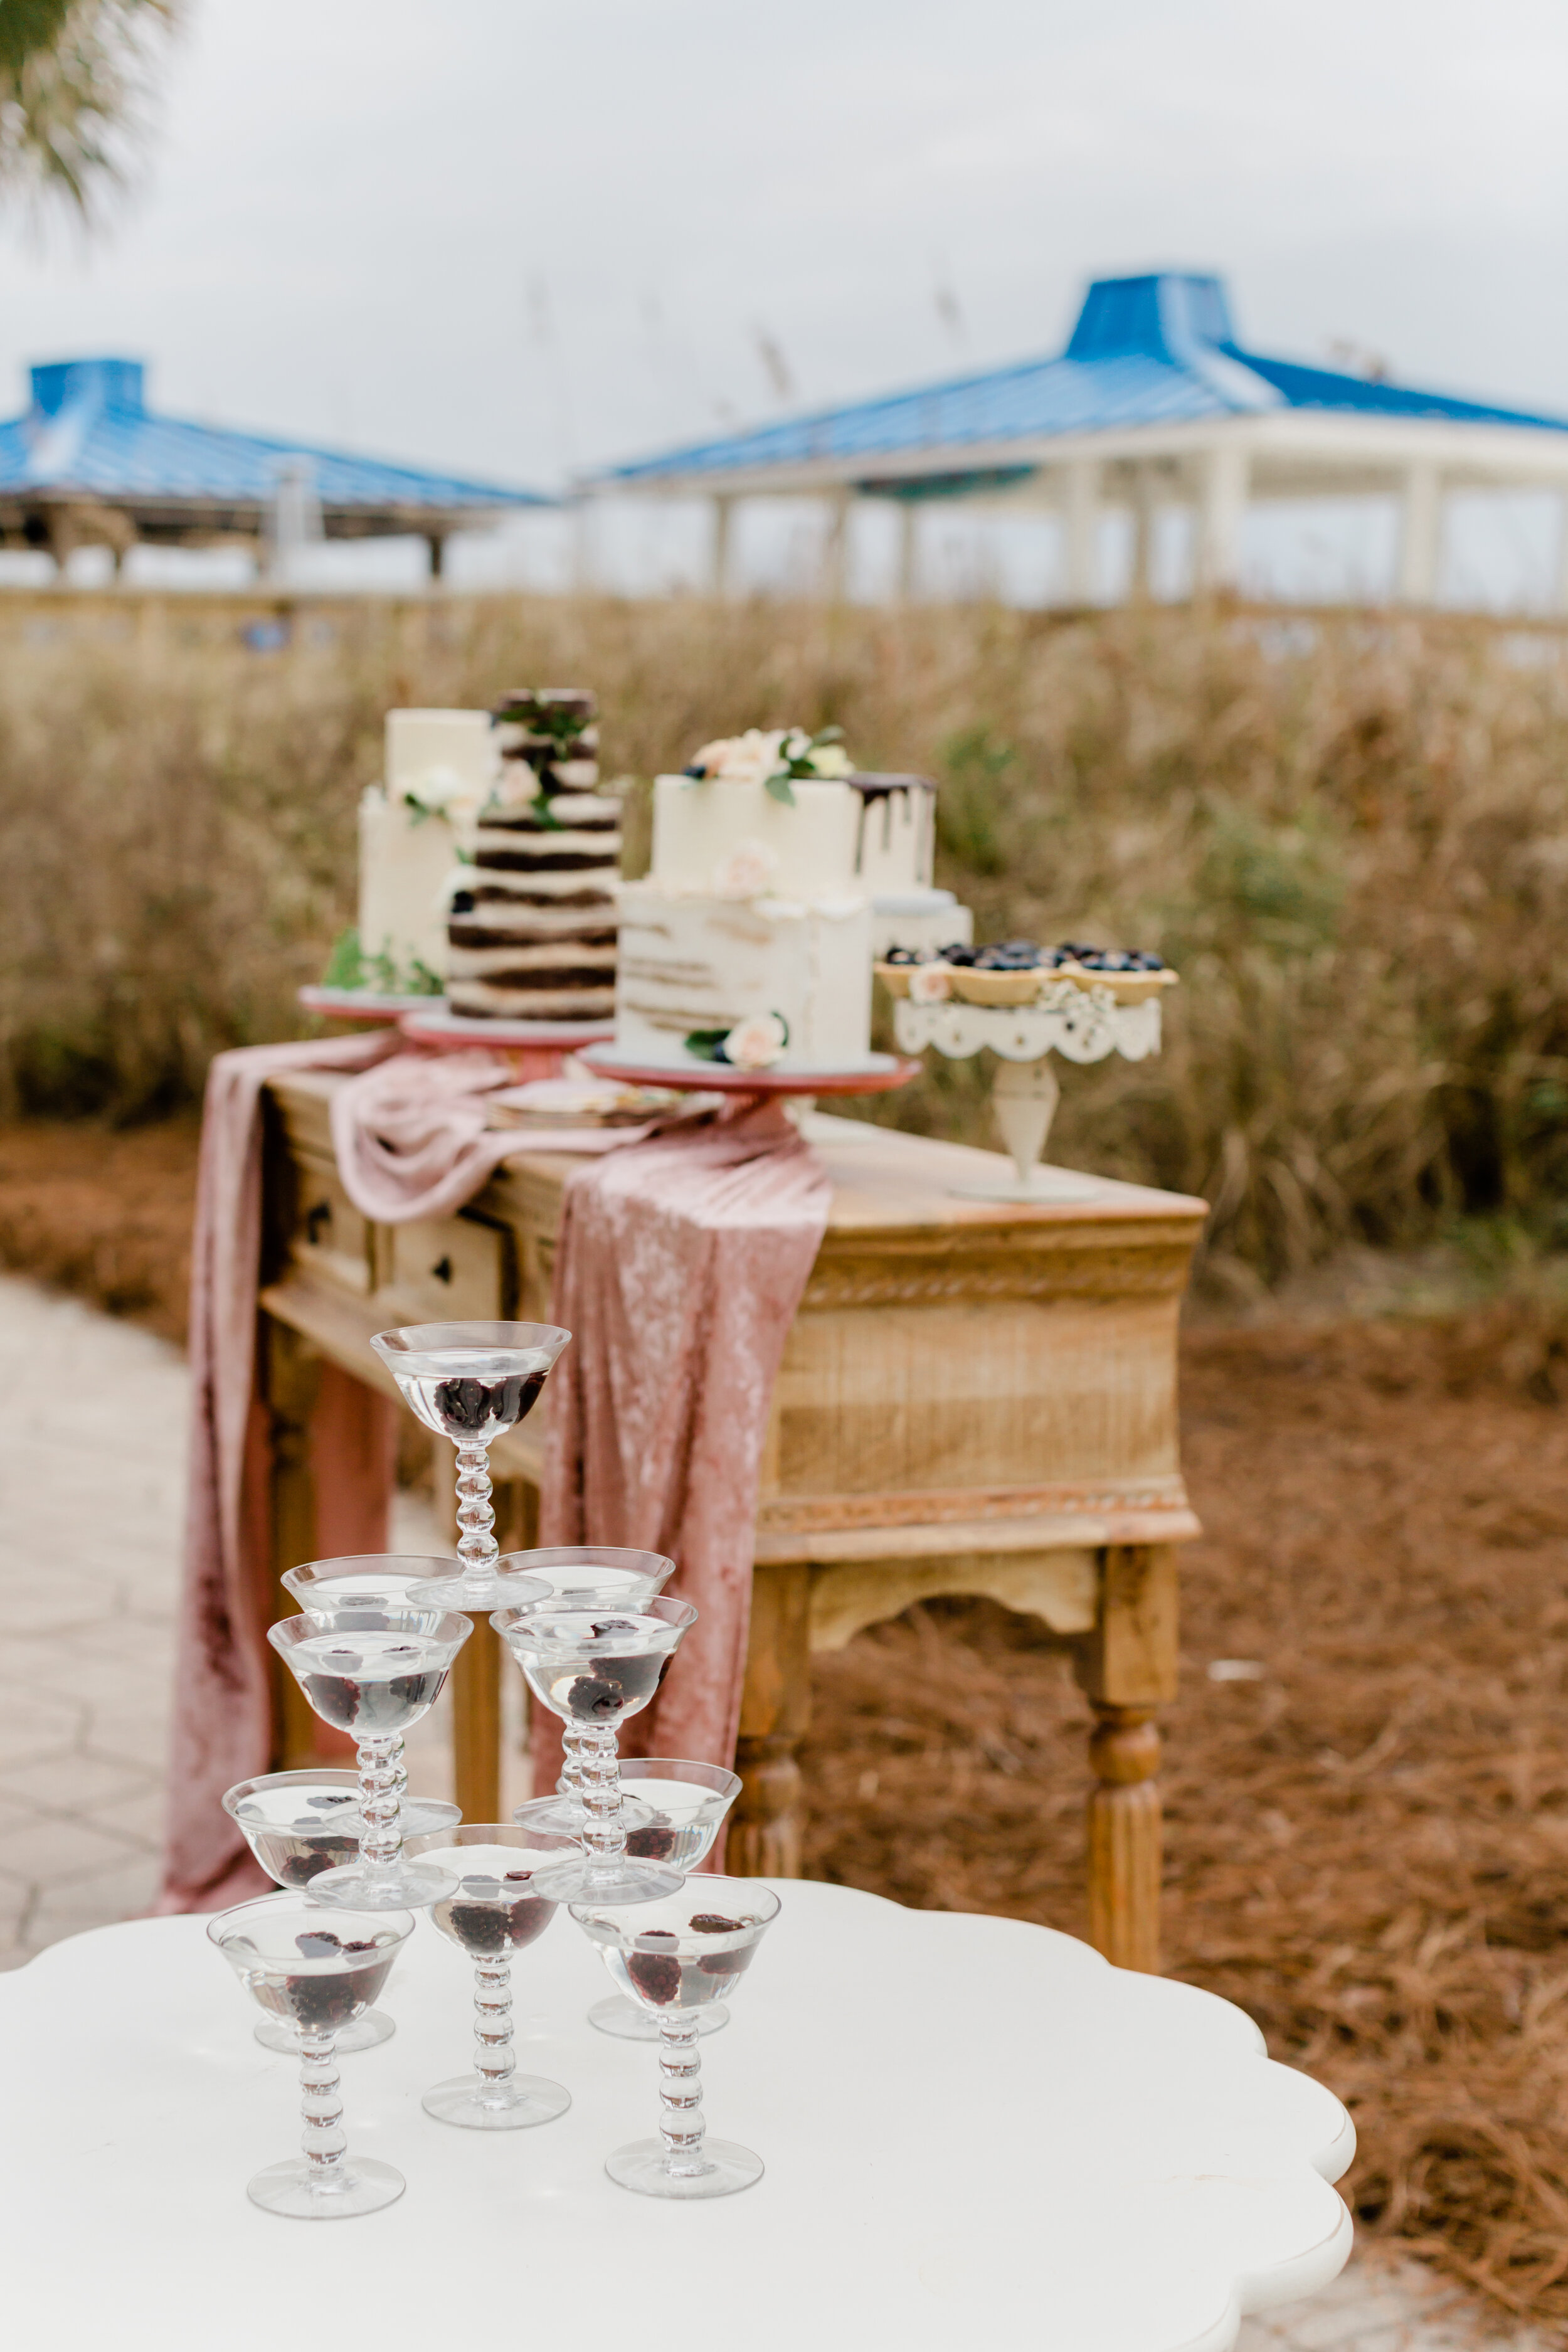 wedding cocktails and cake table ideas for outdoor rustic wedding